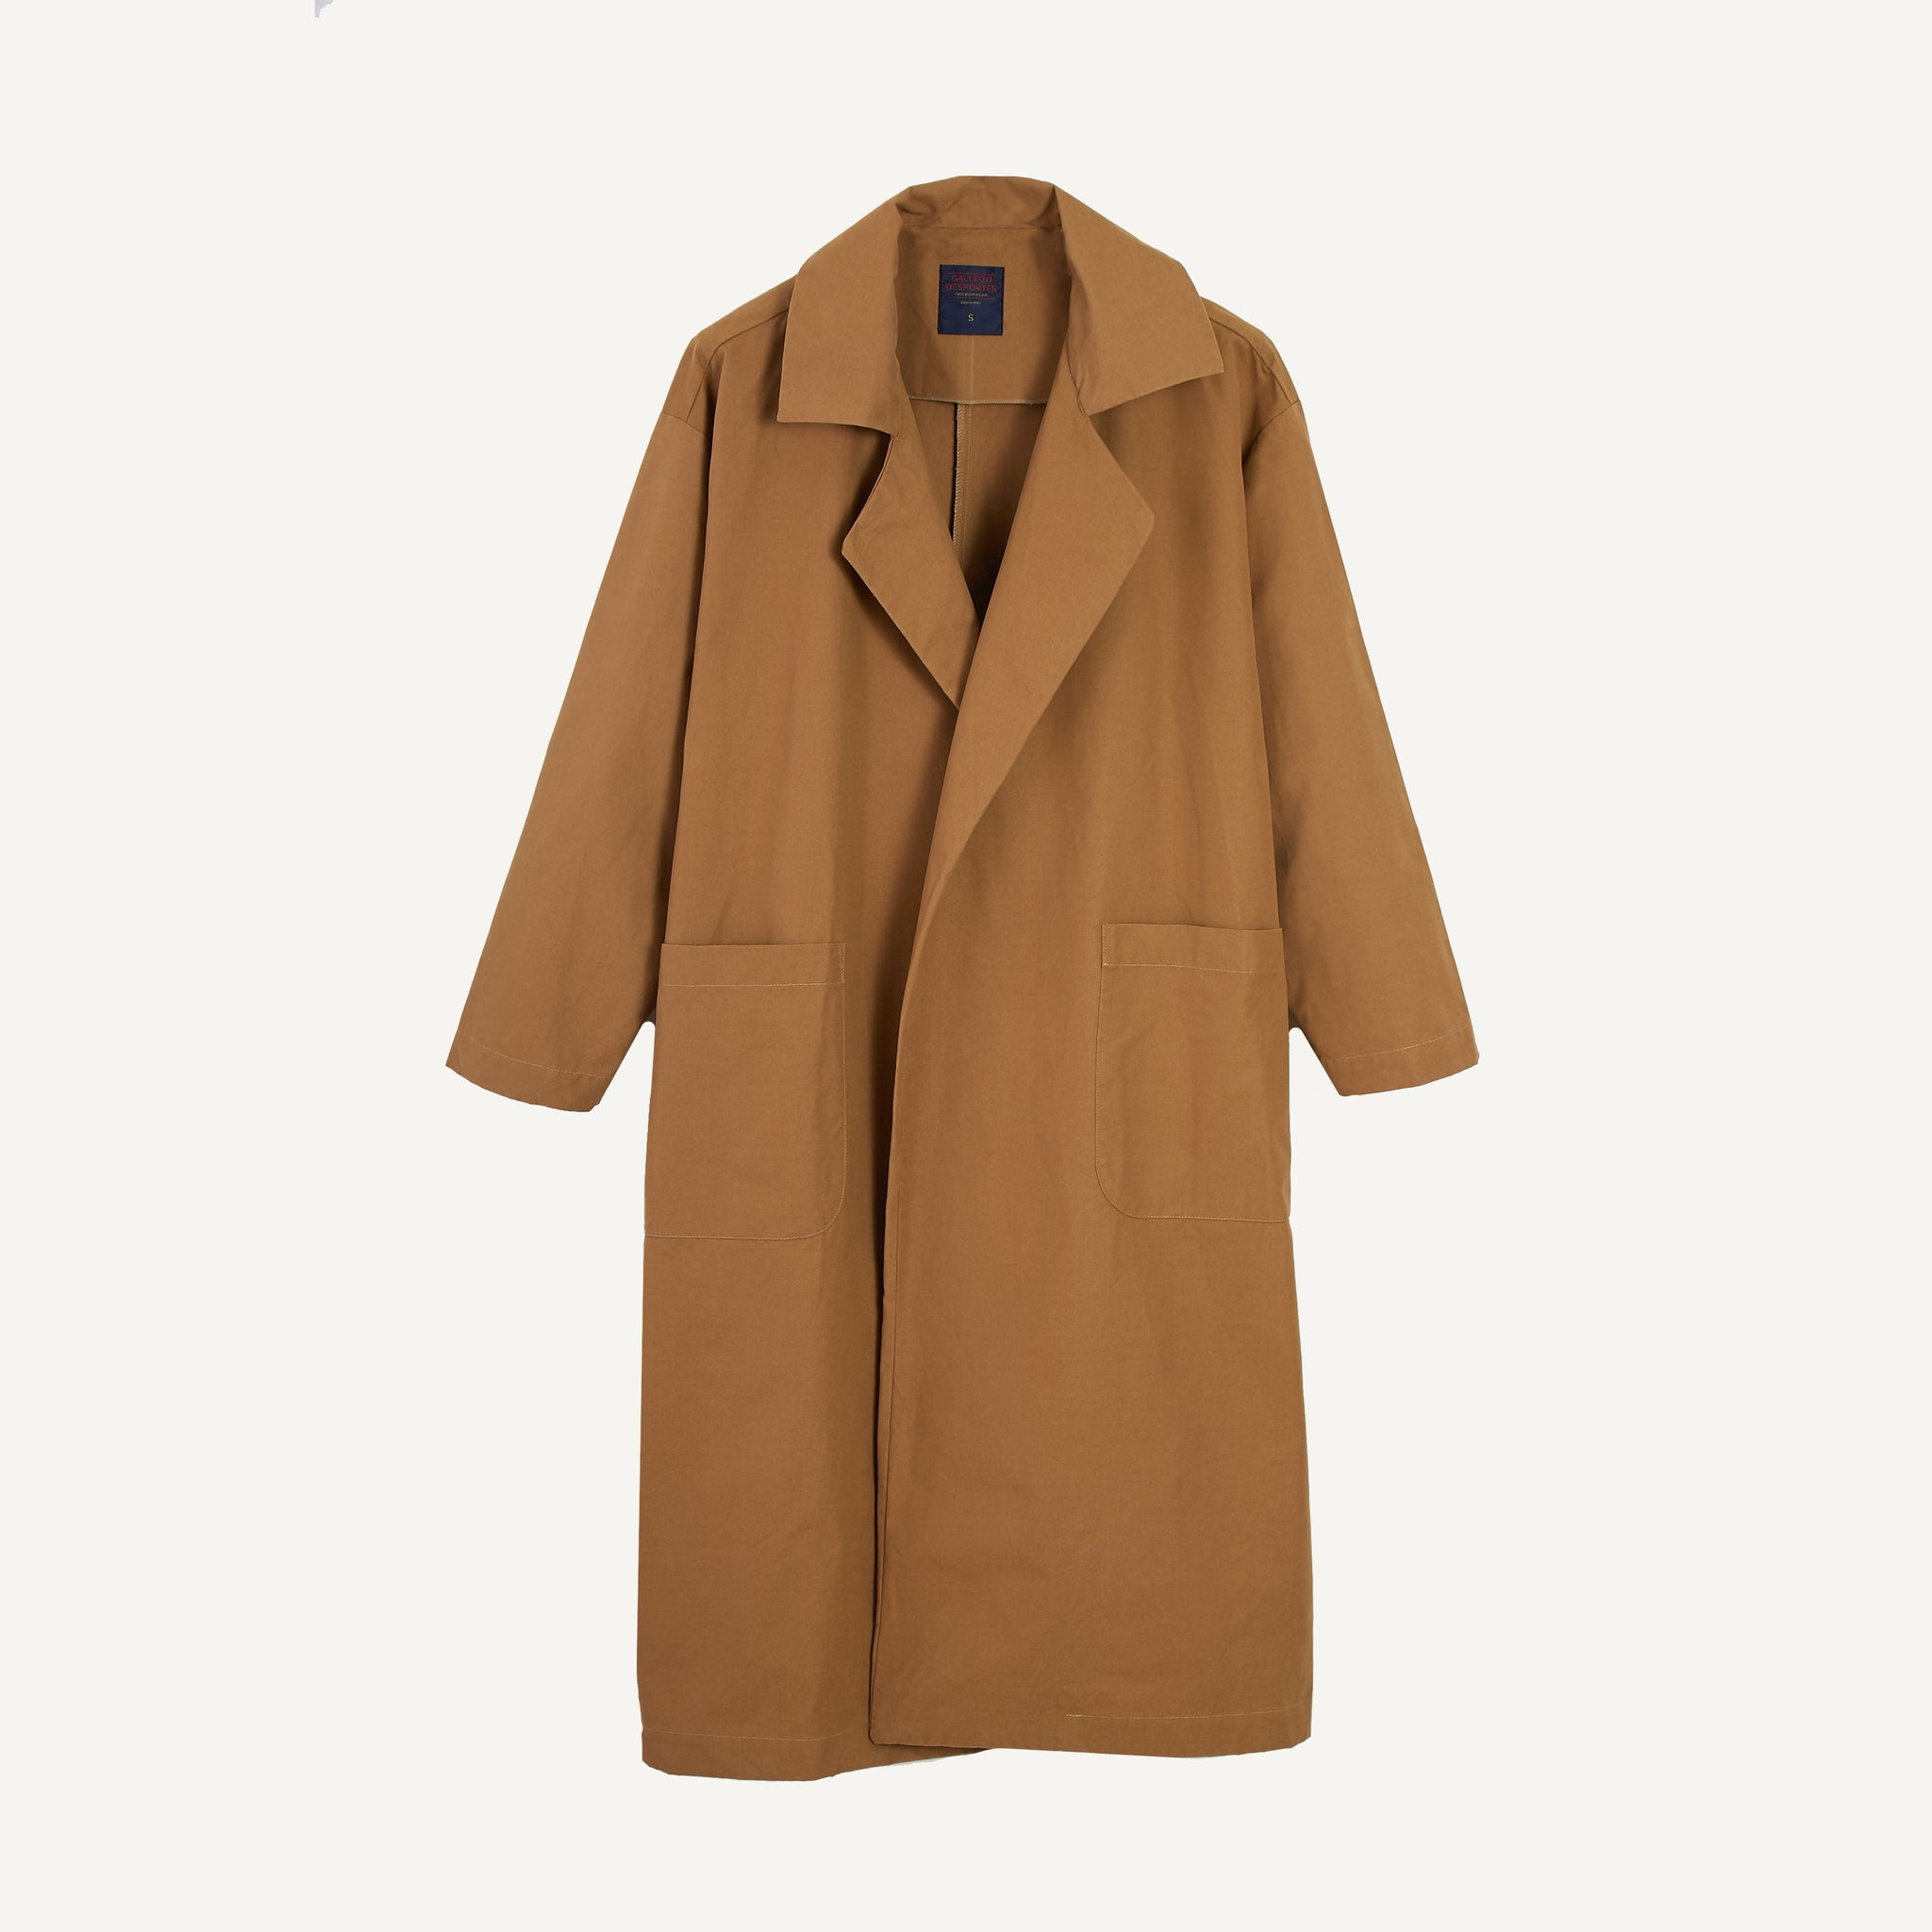 GALLEGO DESPORTES CLASSIC TRENCH